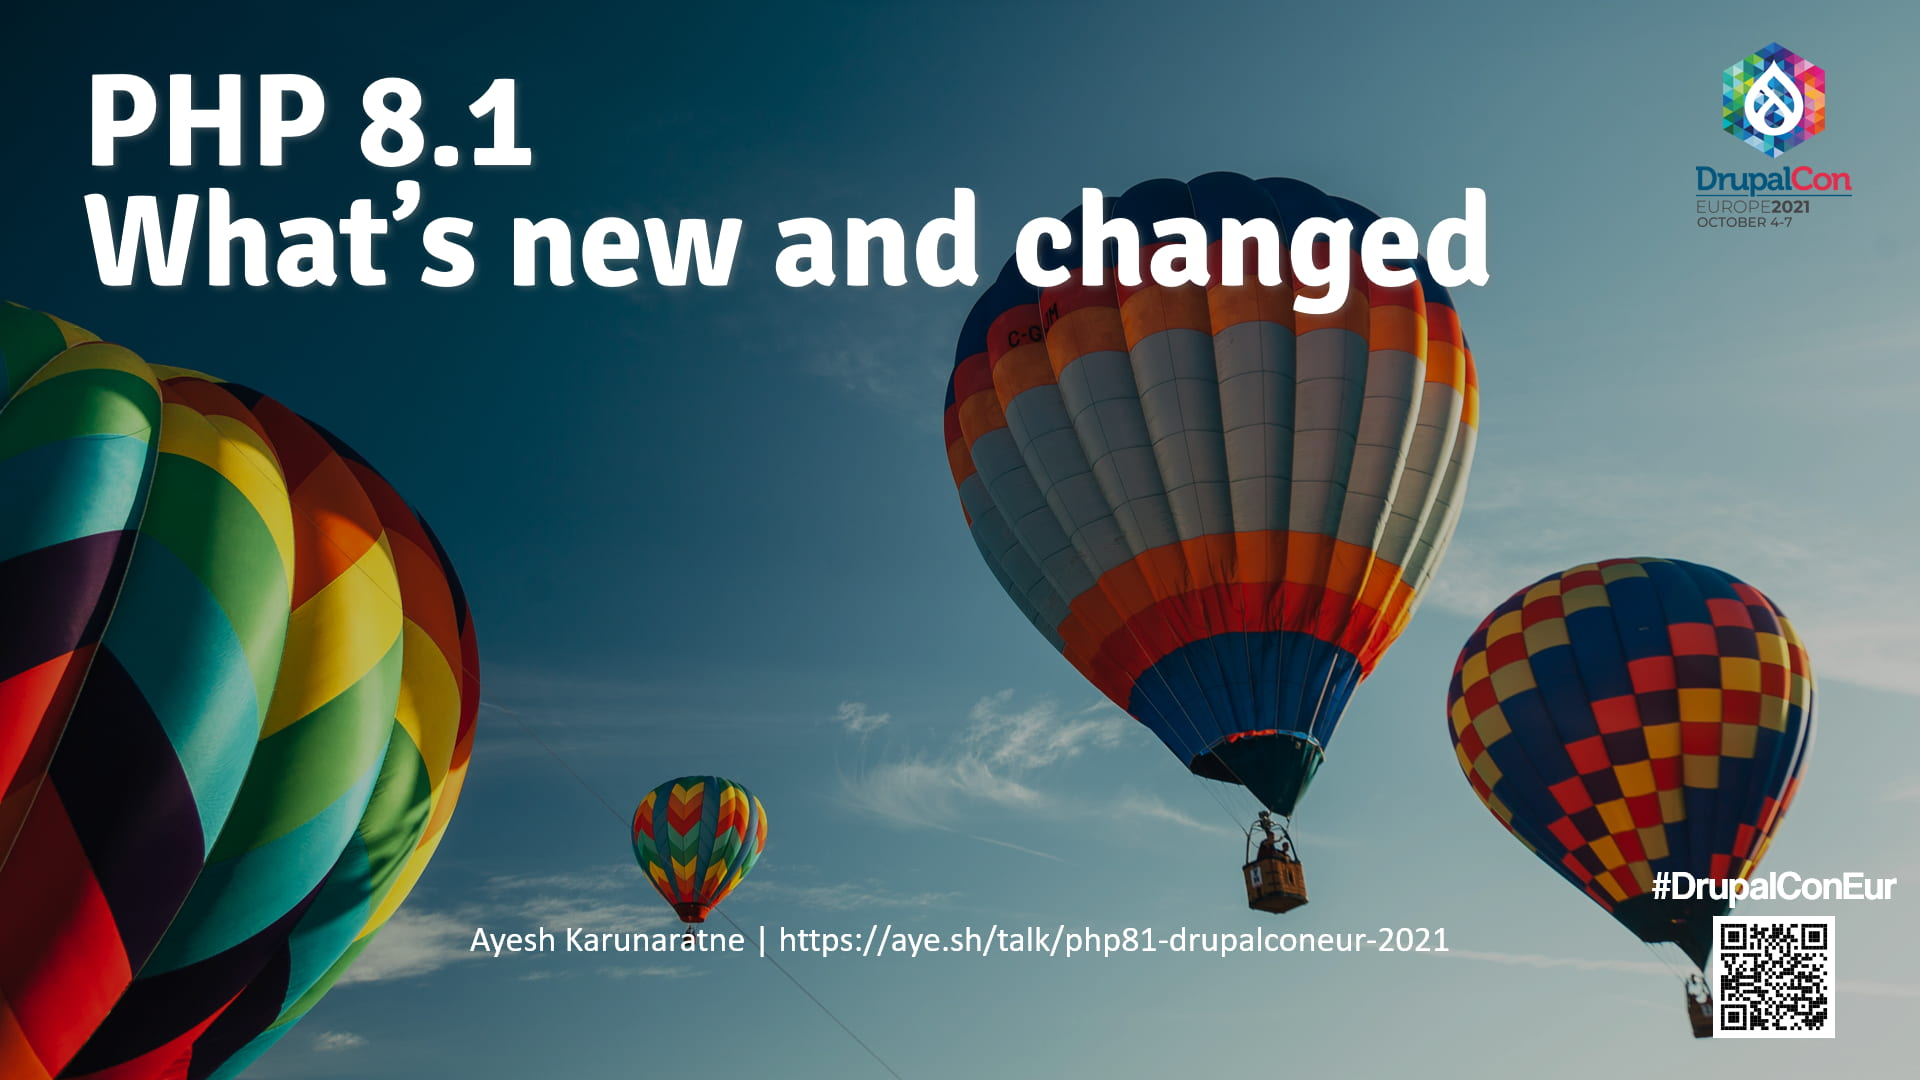 PHP 8.1 - What's new and changed